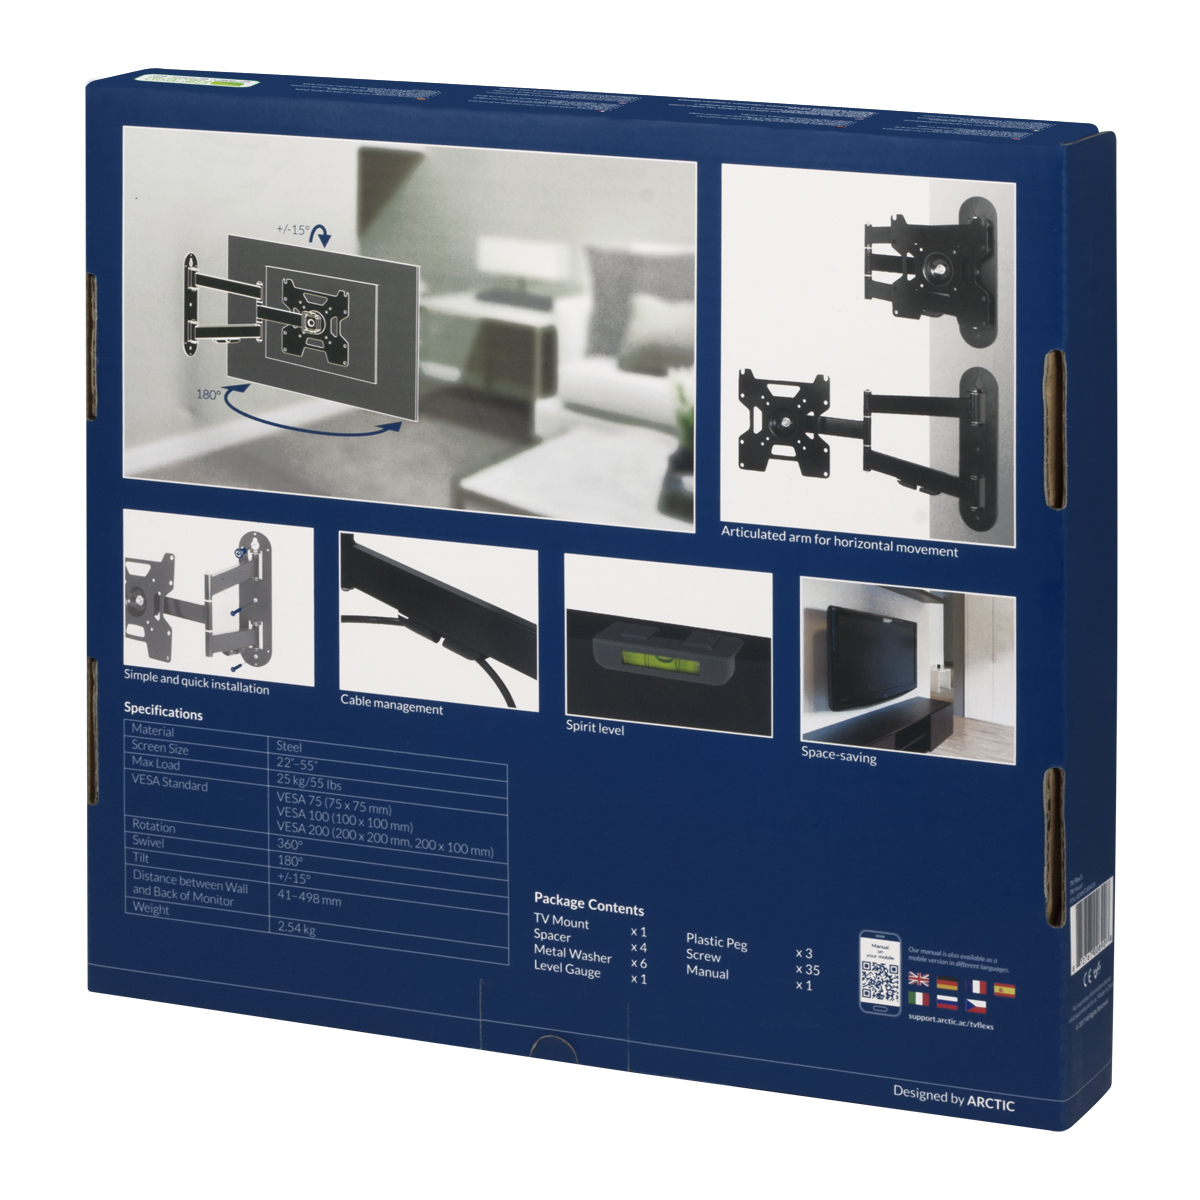 Full-Motion TV Wall Mount ARCTIC TV Flex S Packaging Rear View